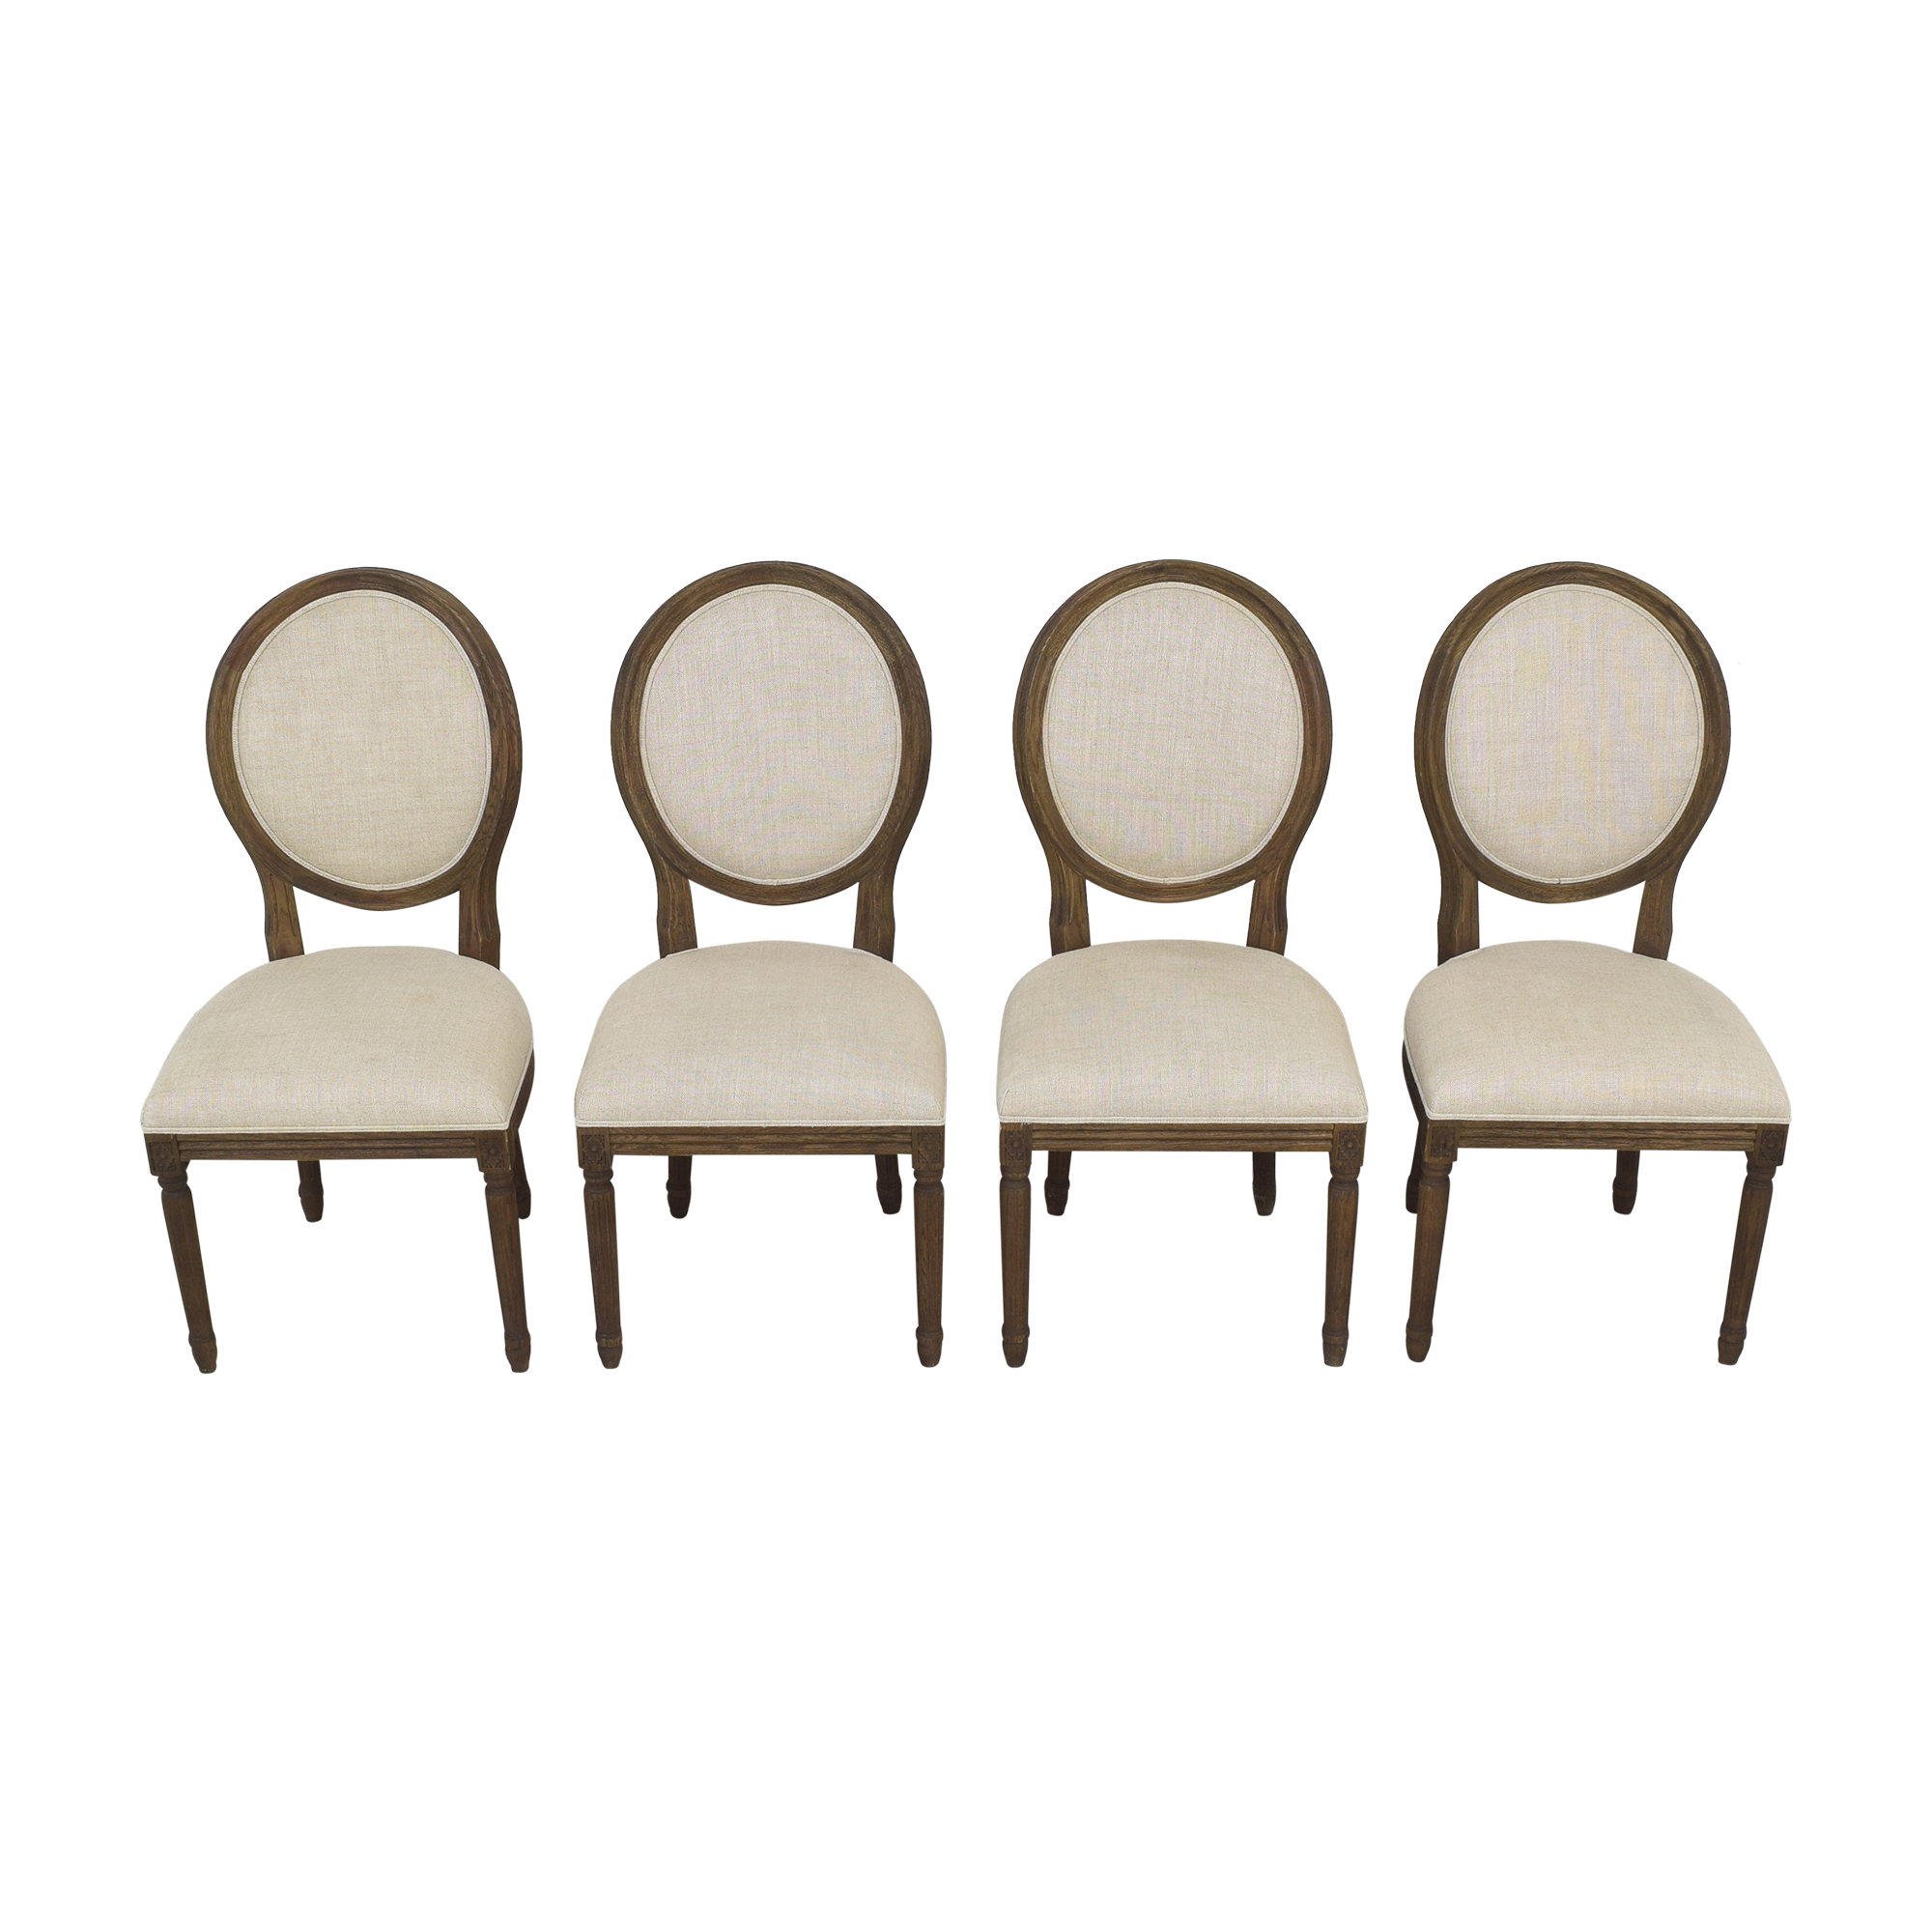 Restoration Hardware Vintage French Round Dining Side Chairs / Dining Chairs